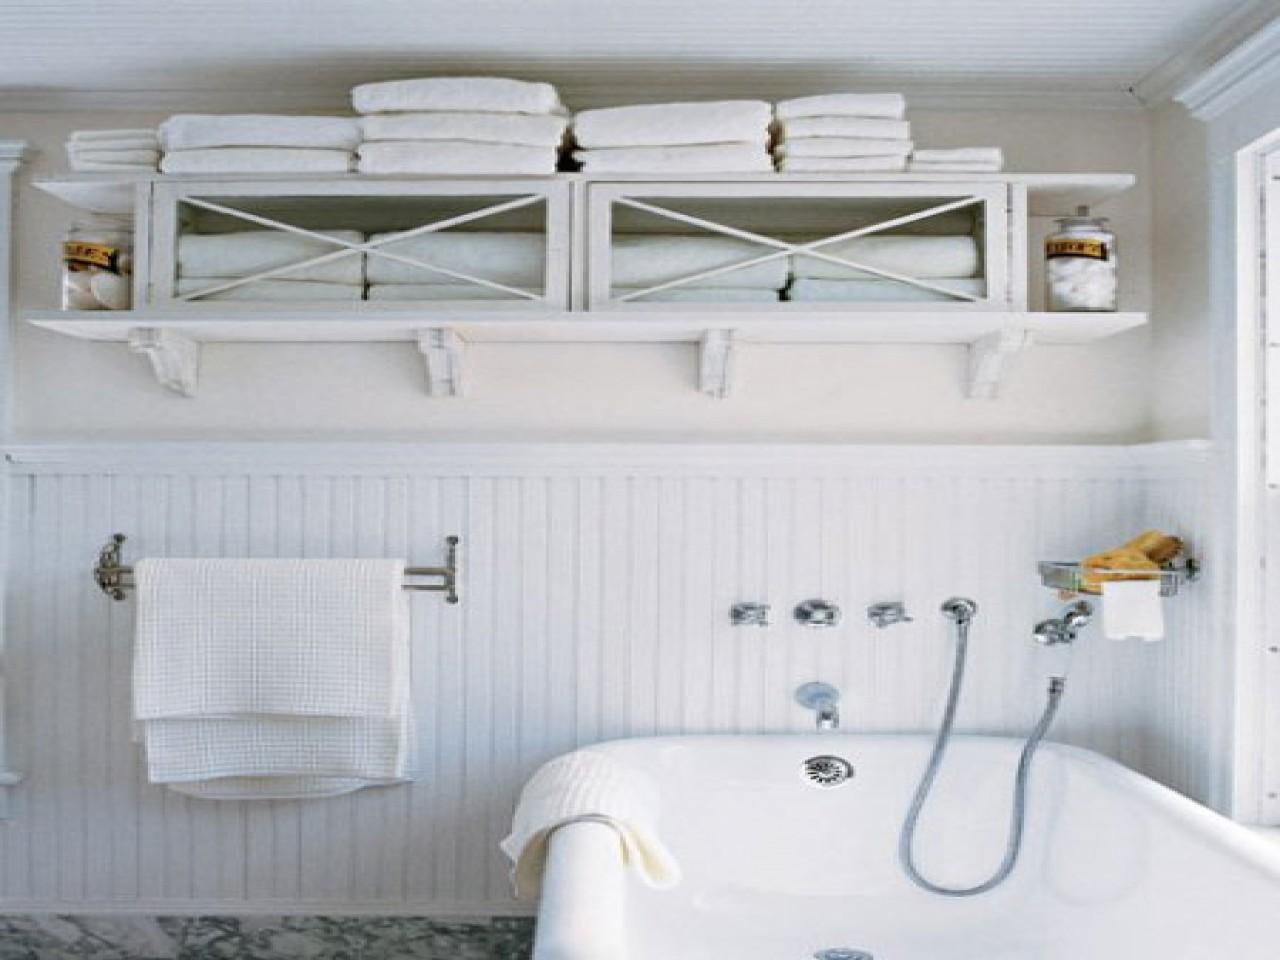 Towel Bar Shelf Bathroom Storage Small Space